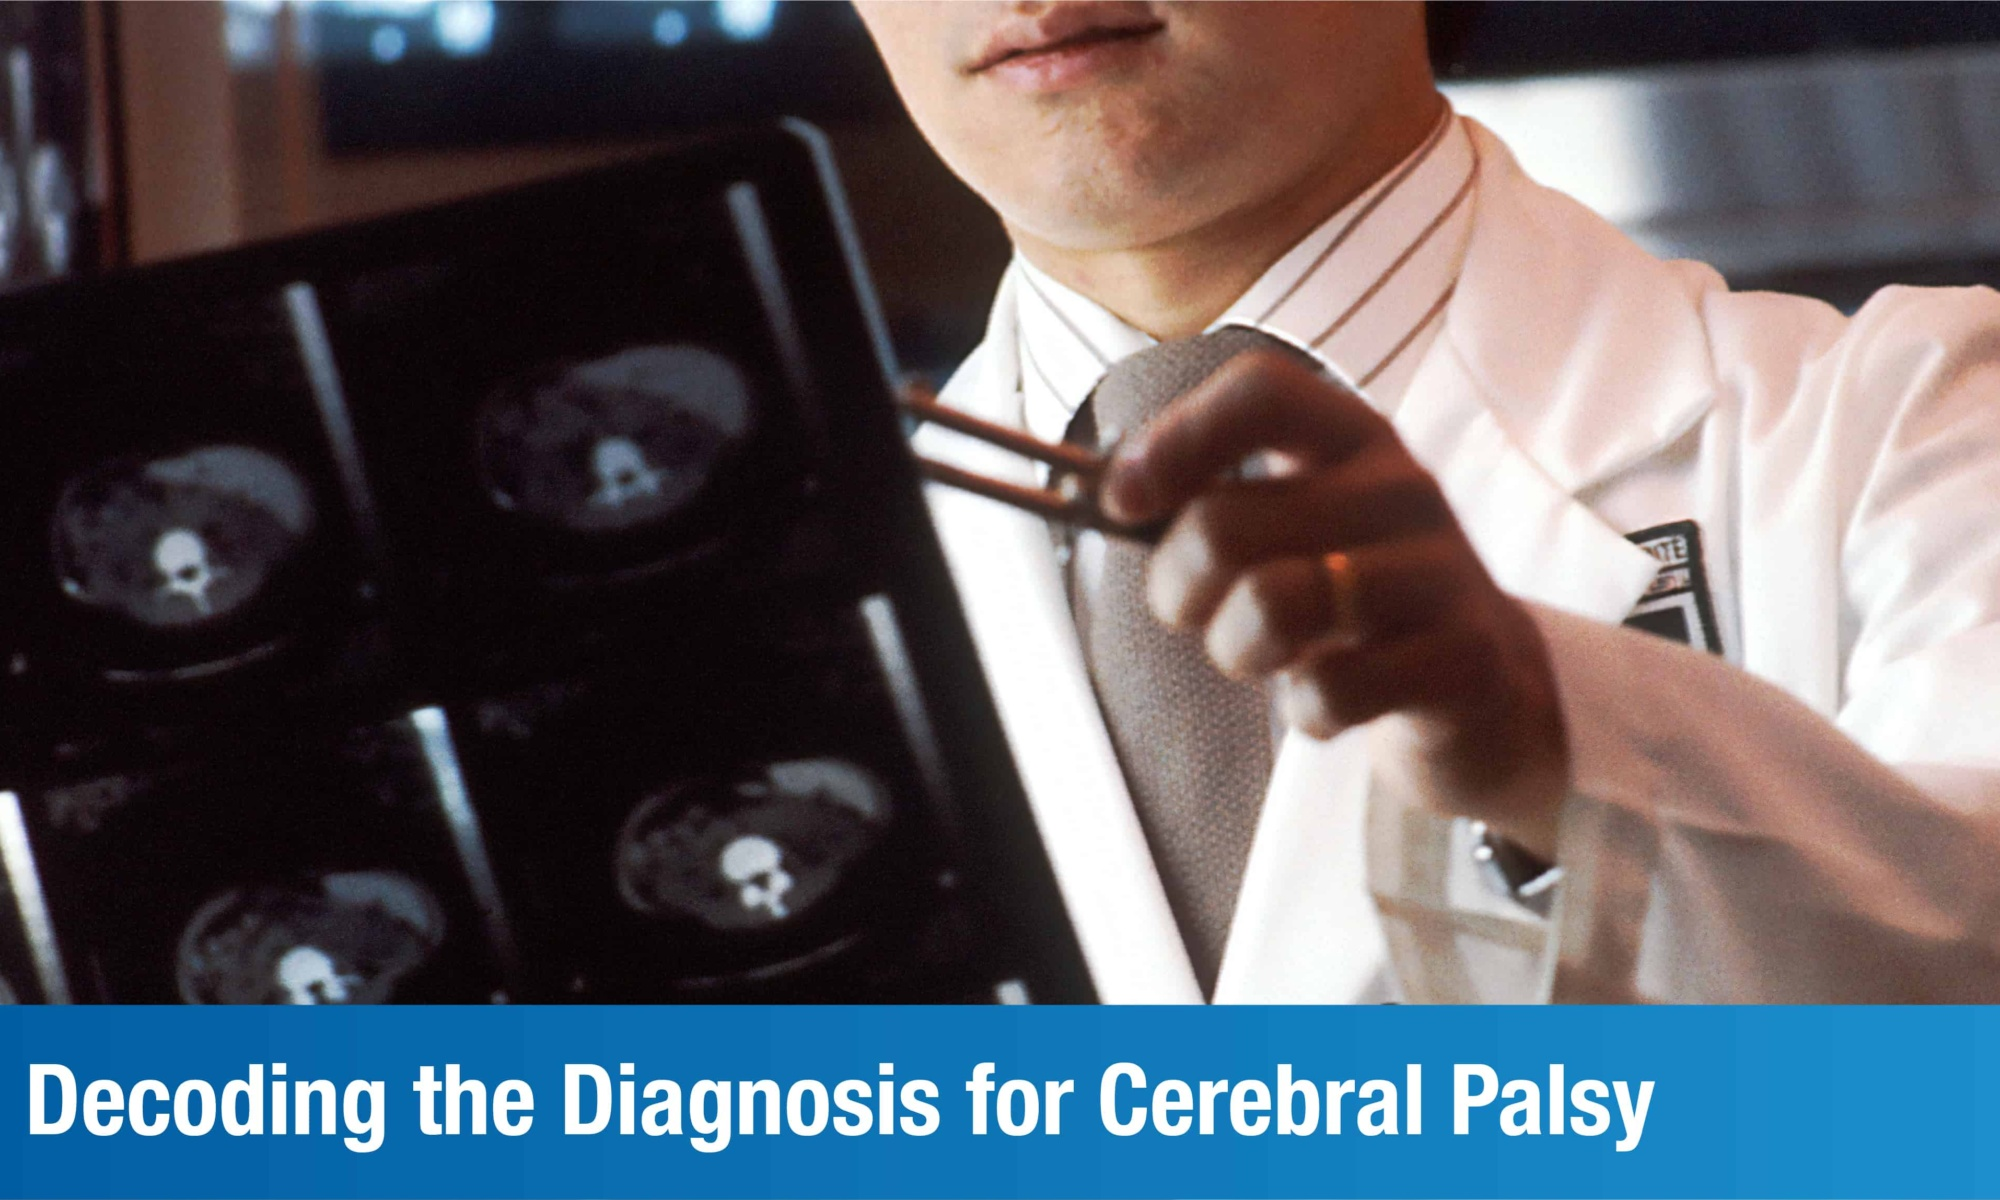 Decoding the Diagnosis for Cerebral Palsy